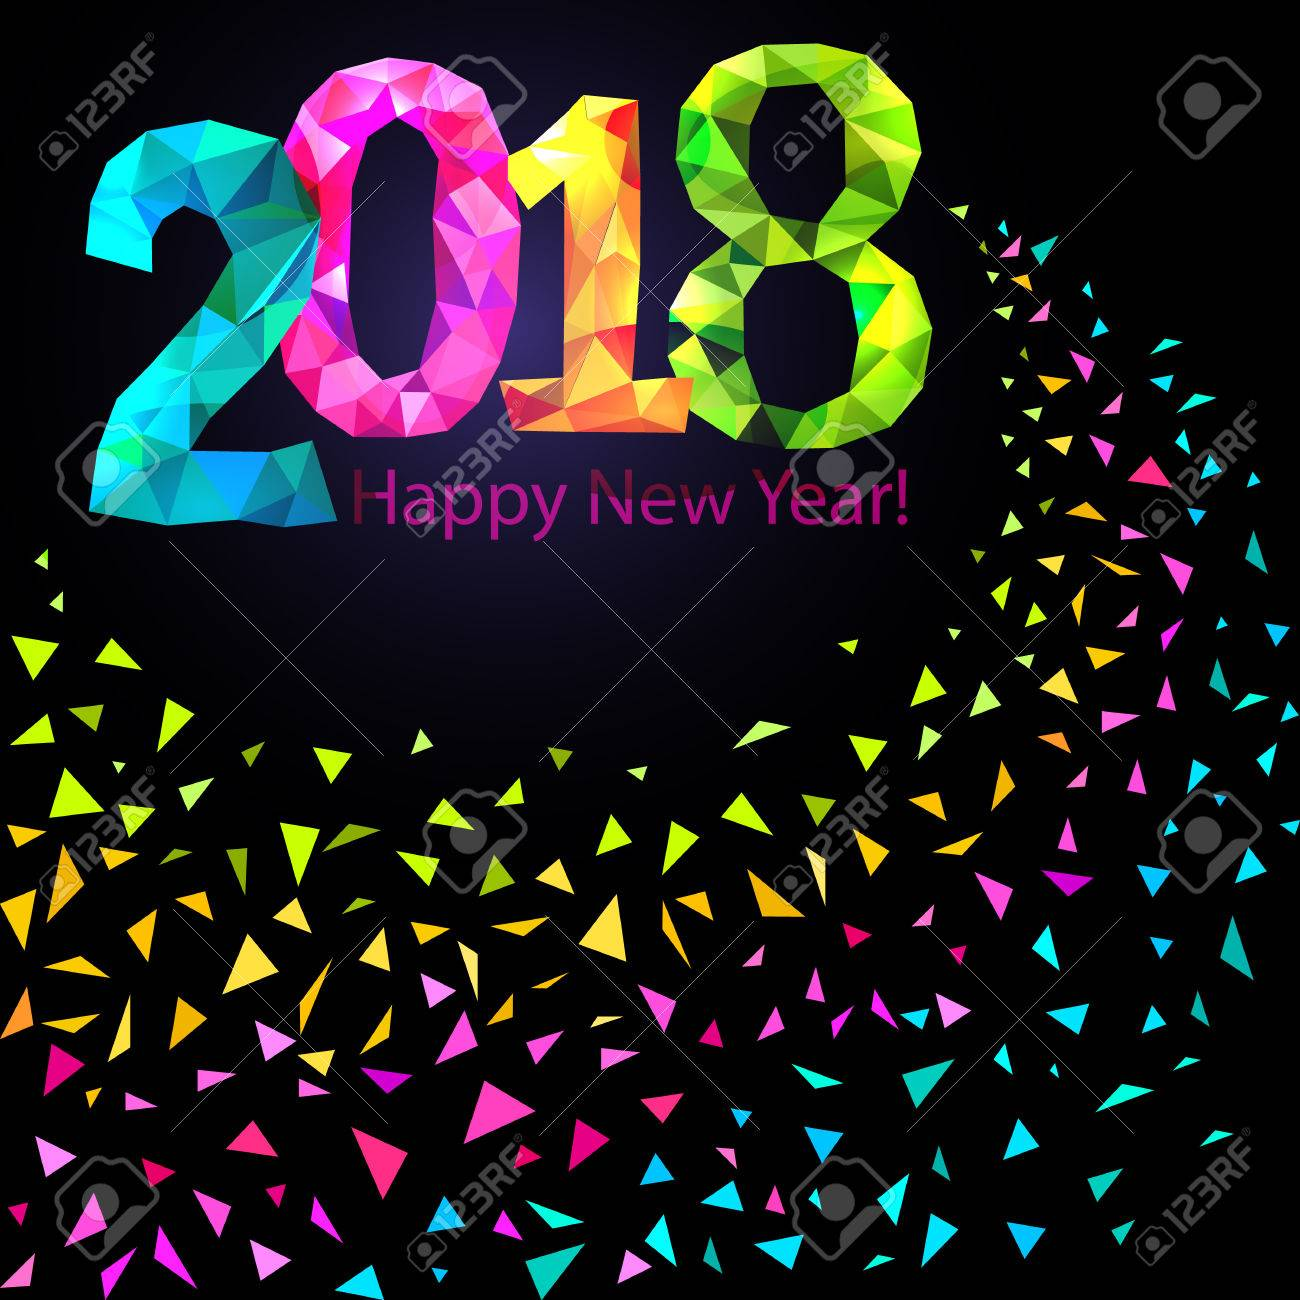 happy new year 2018 greeting card festive illustration with colorful confetti party popper and